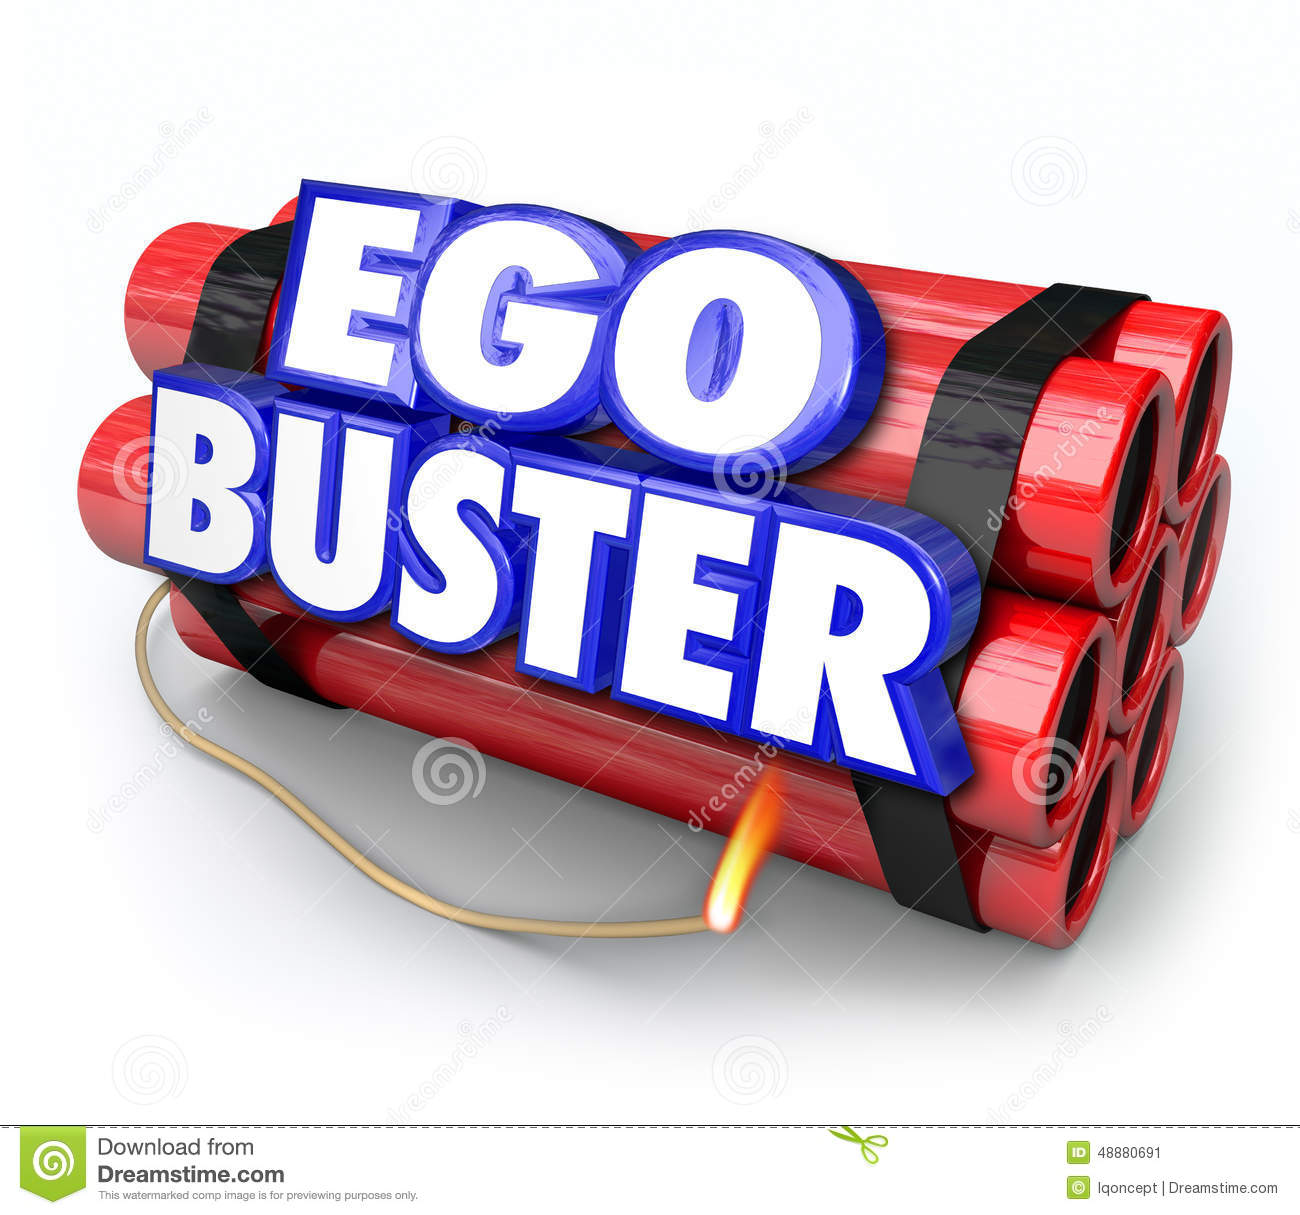 What is an ego buster